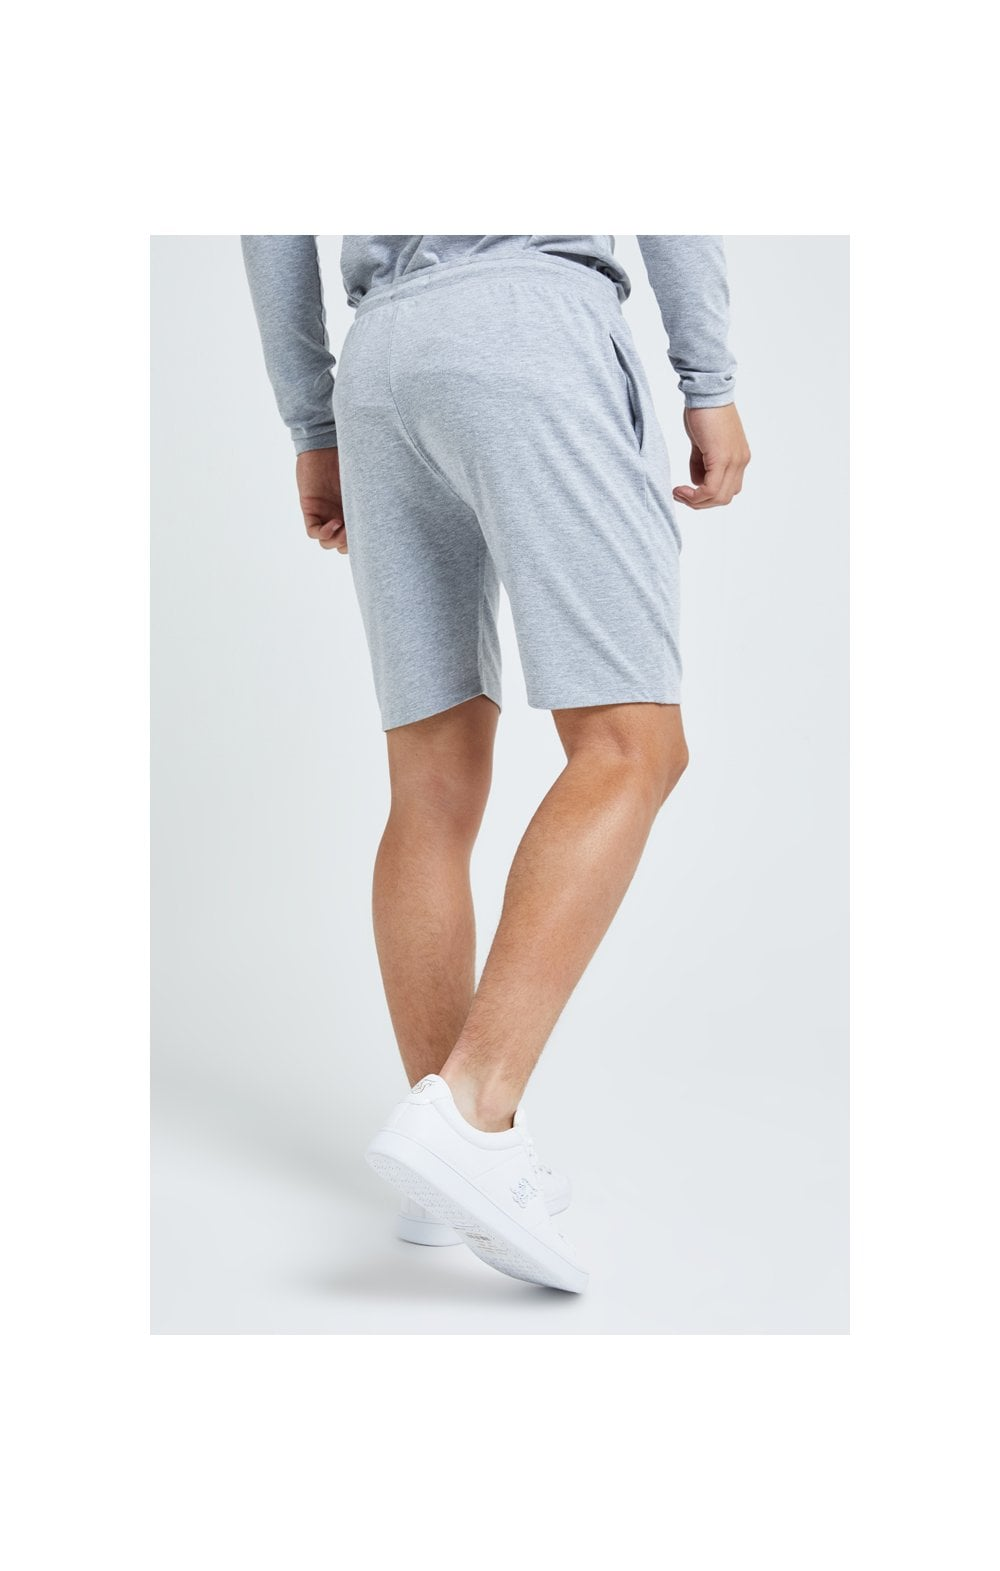 Illusive London Core Jersey Shorts - Grey Marl (5)